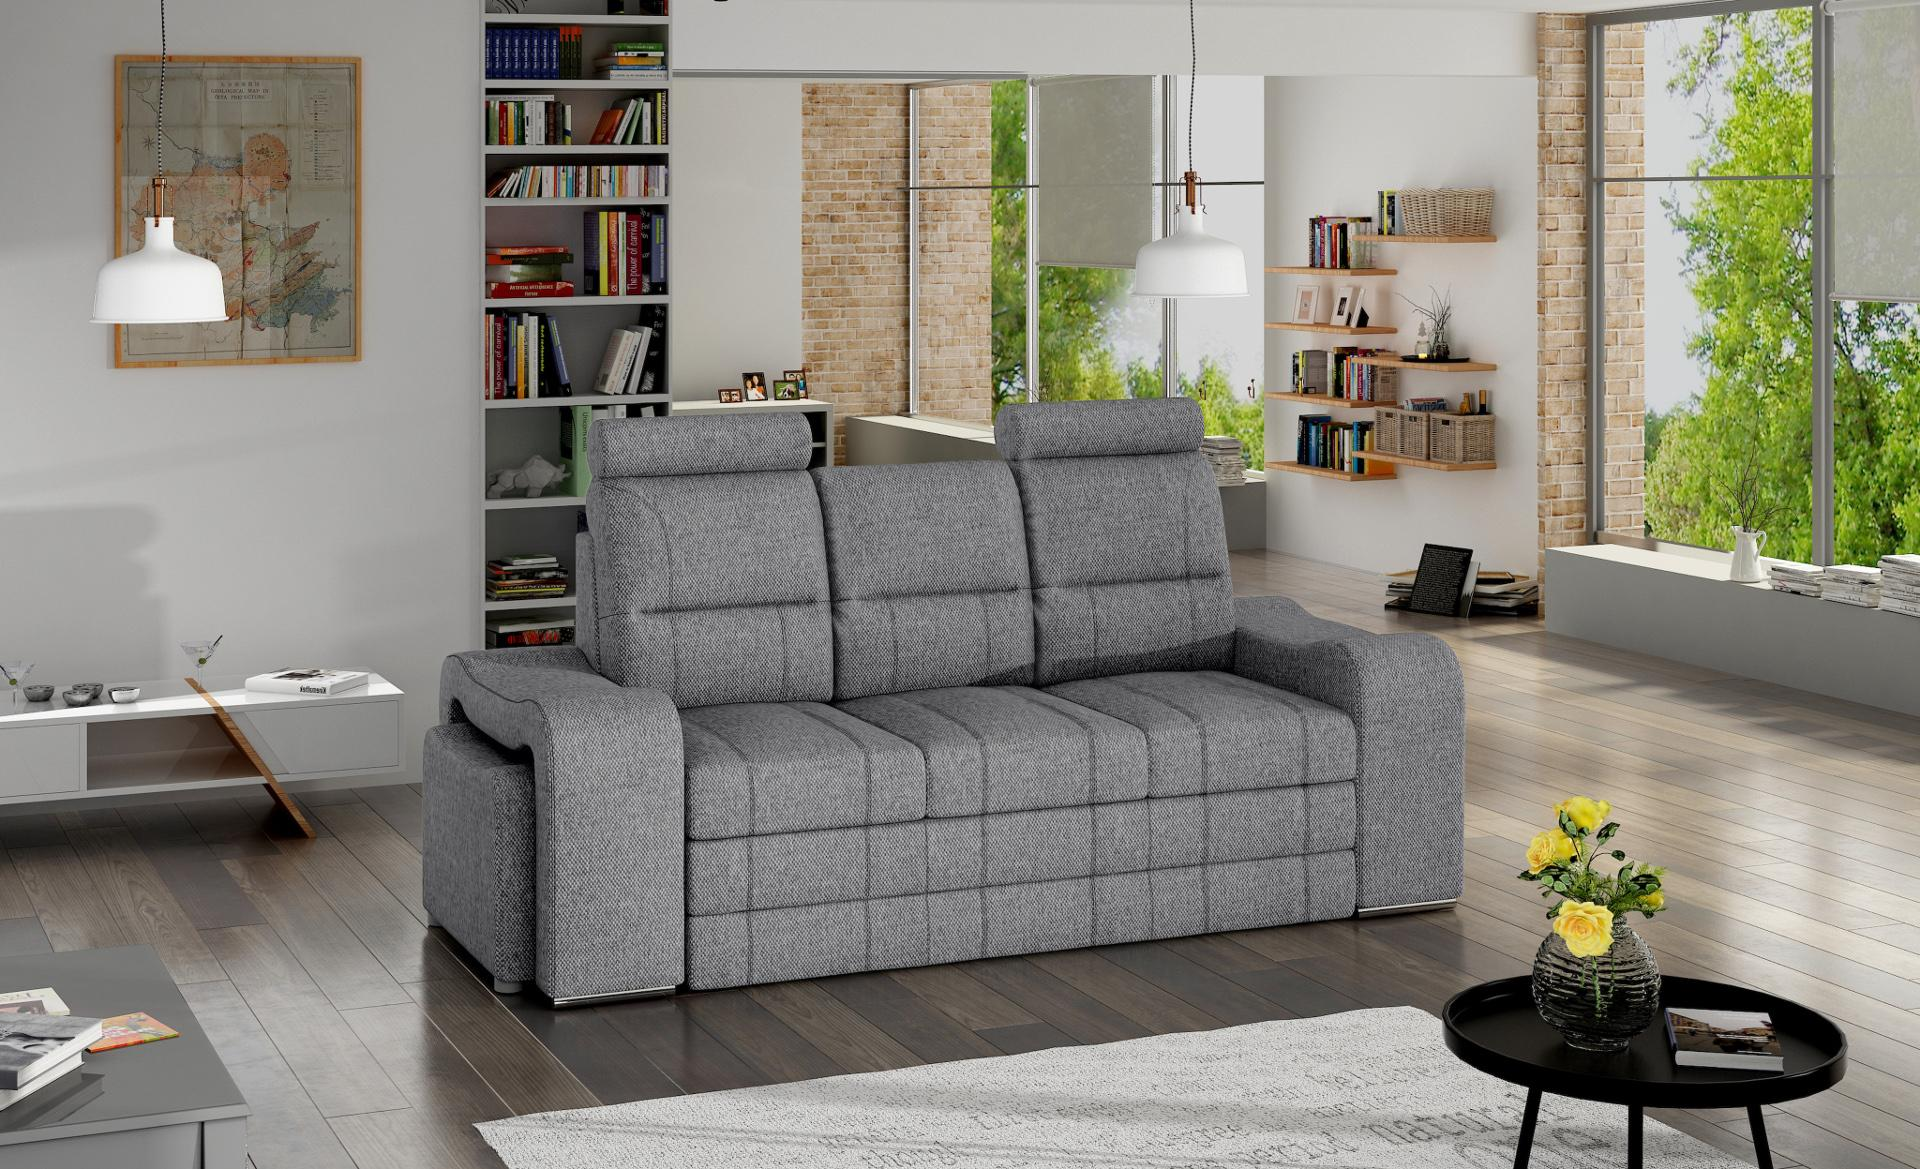 schlafsofa klappcouch 3 sitzer schlaffunktion bettkasten couch sofa klappsofa ebay. Black Bedroom Furniture Sets. Home Design Ideas